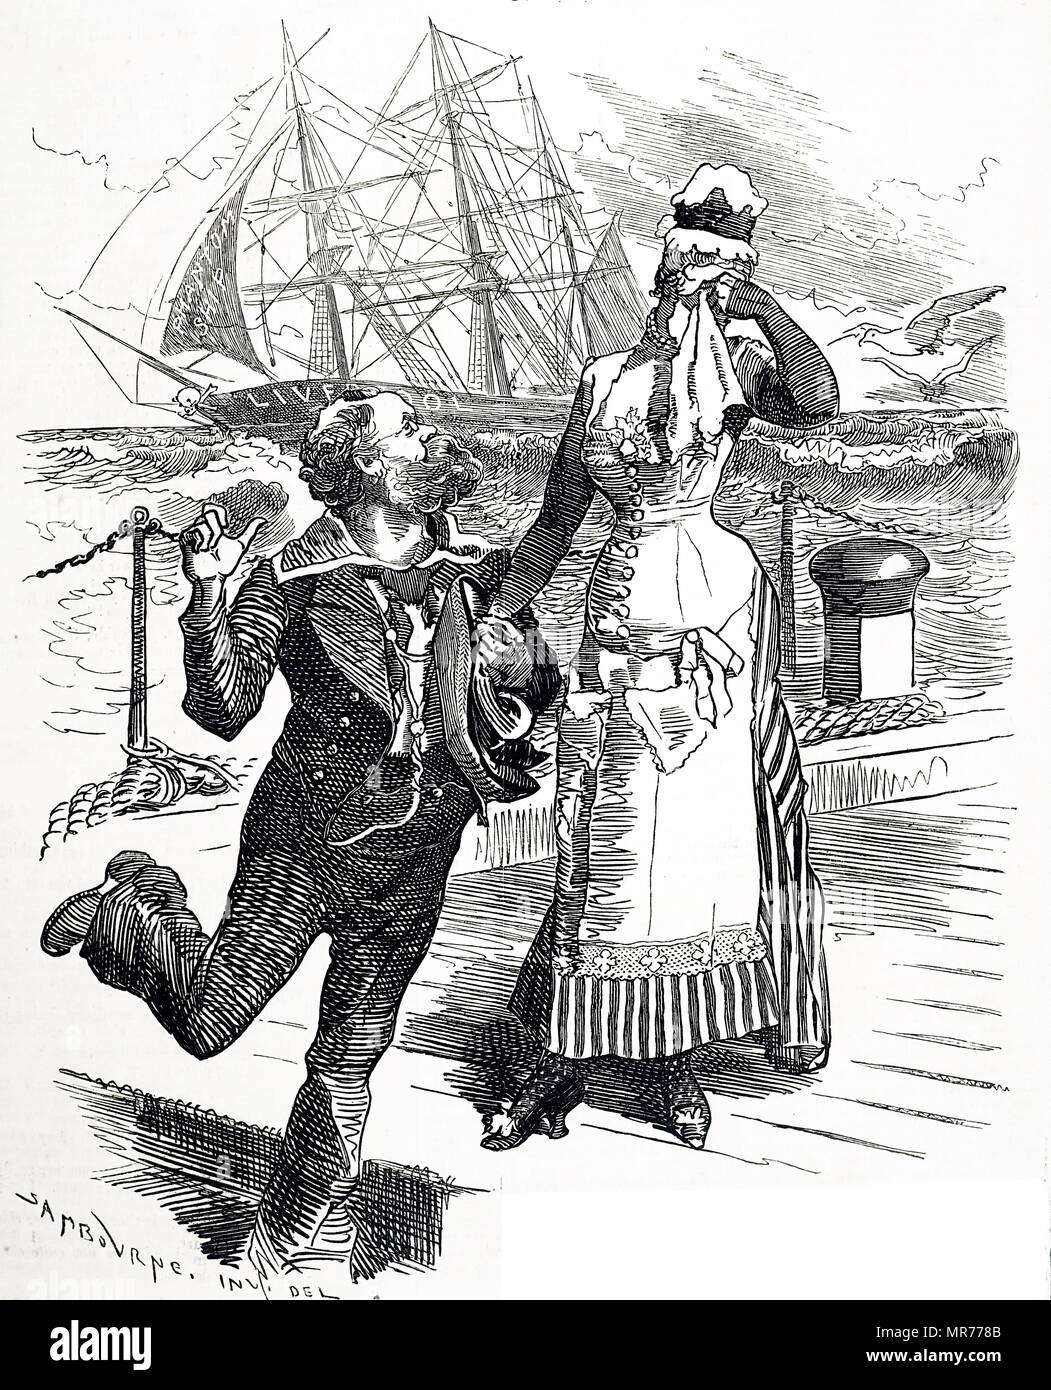 Cartoon commenting on the retirement of Samuel Plimsoll as MP for Derby, a seat which he held from 1868-1880.  He is shown dressed as a sailor, with a ship in the background as a tribute to the work he did in bringing about legislation regulating the loading and seaworthiness of merchant ships. It is for him that the Plimsoll Line is named. Samuel Plimsoll (1824-1898) an English politician and social reformer. Dated 19th century - Stock Image